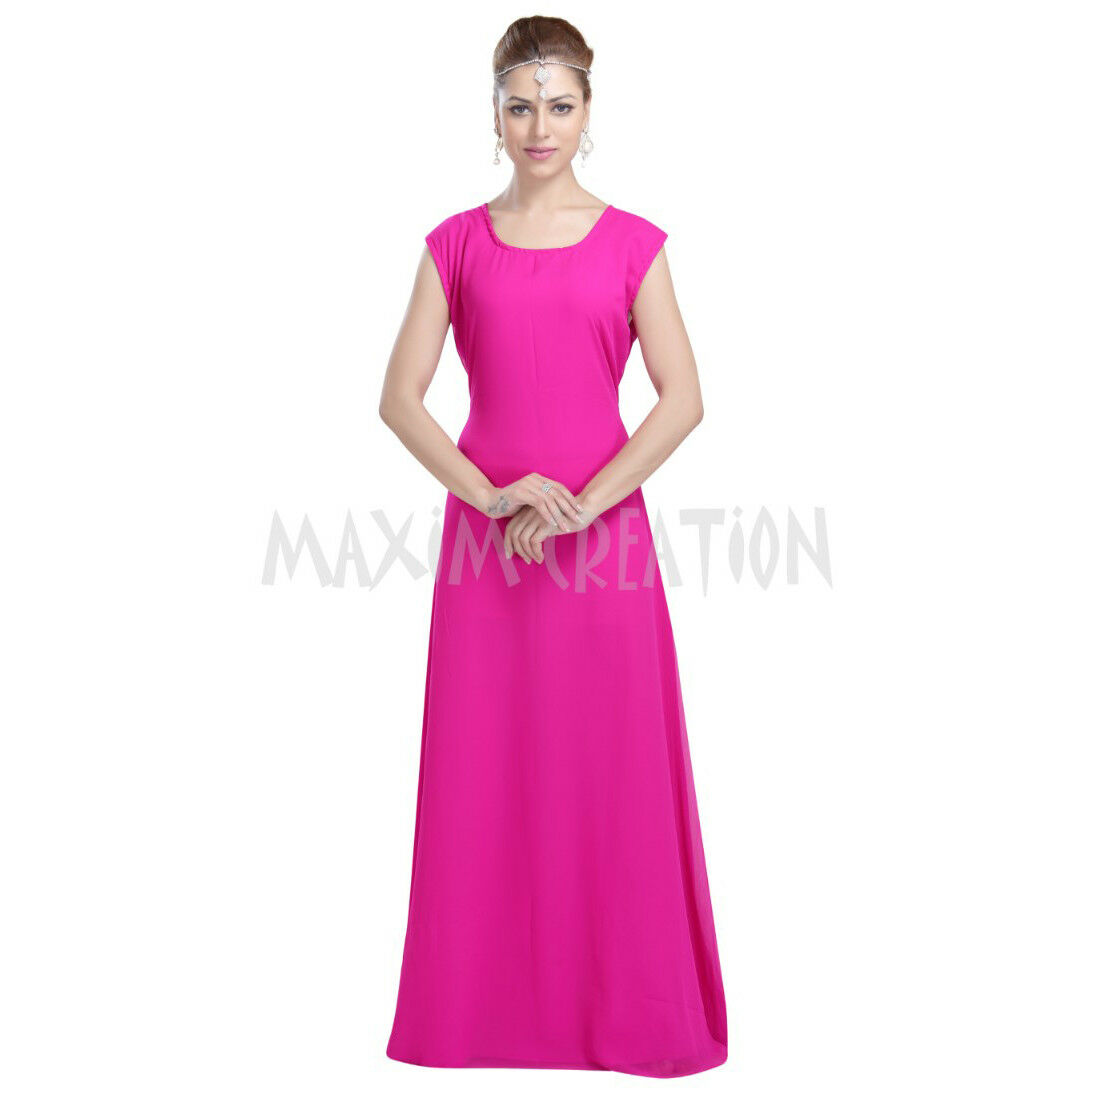 Most Admirable Evening Wear Home Gown For Women's By Maxim Creation 6052